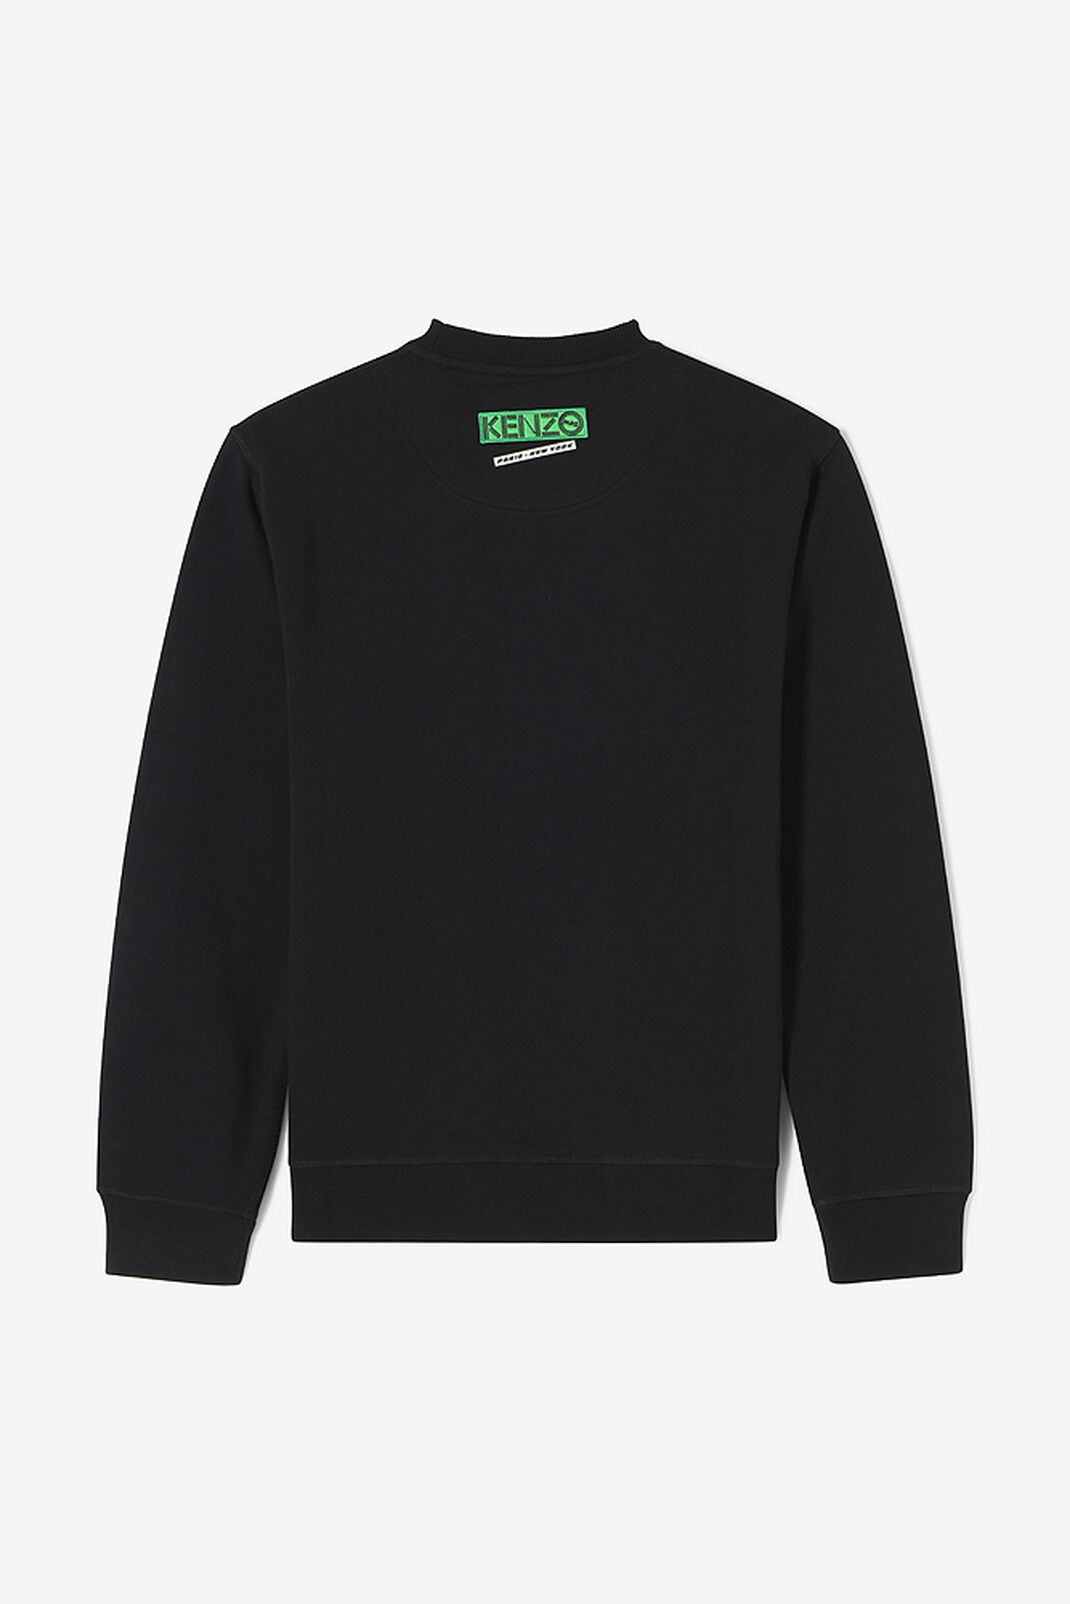 BLACK Tiger x Flyer Sweatshirt for men KENZO